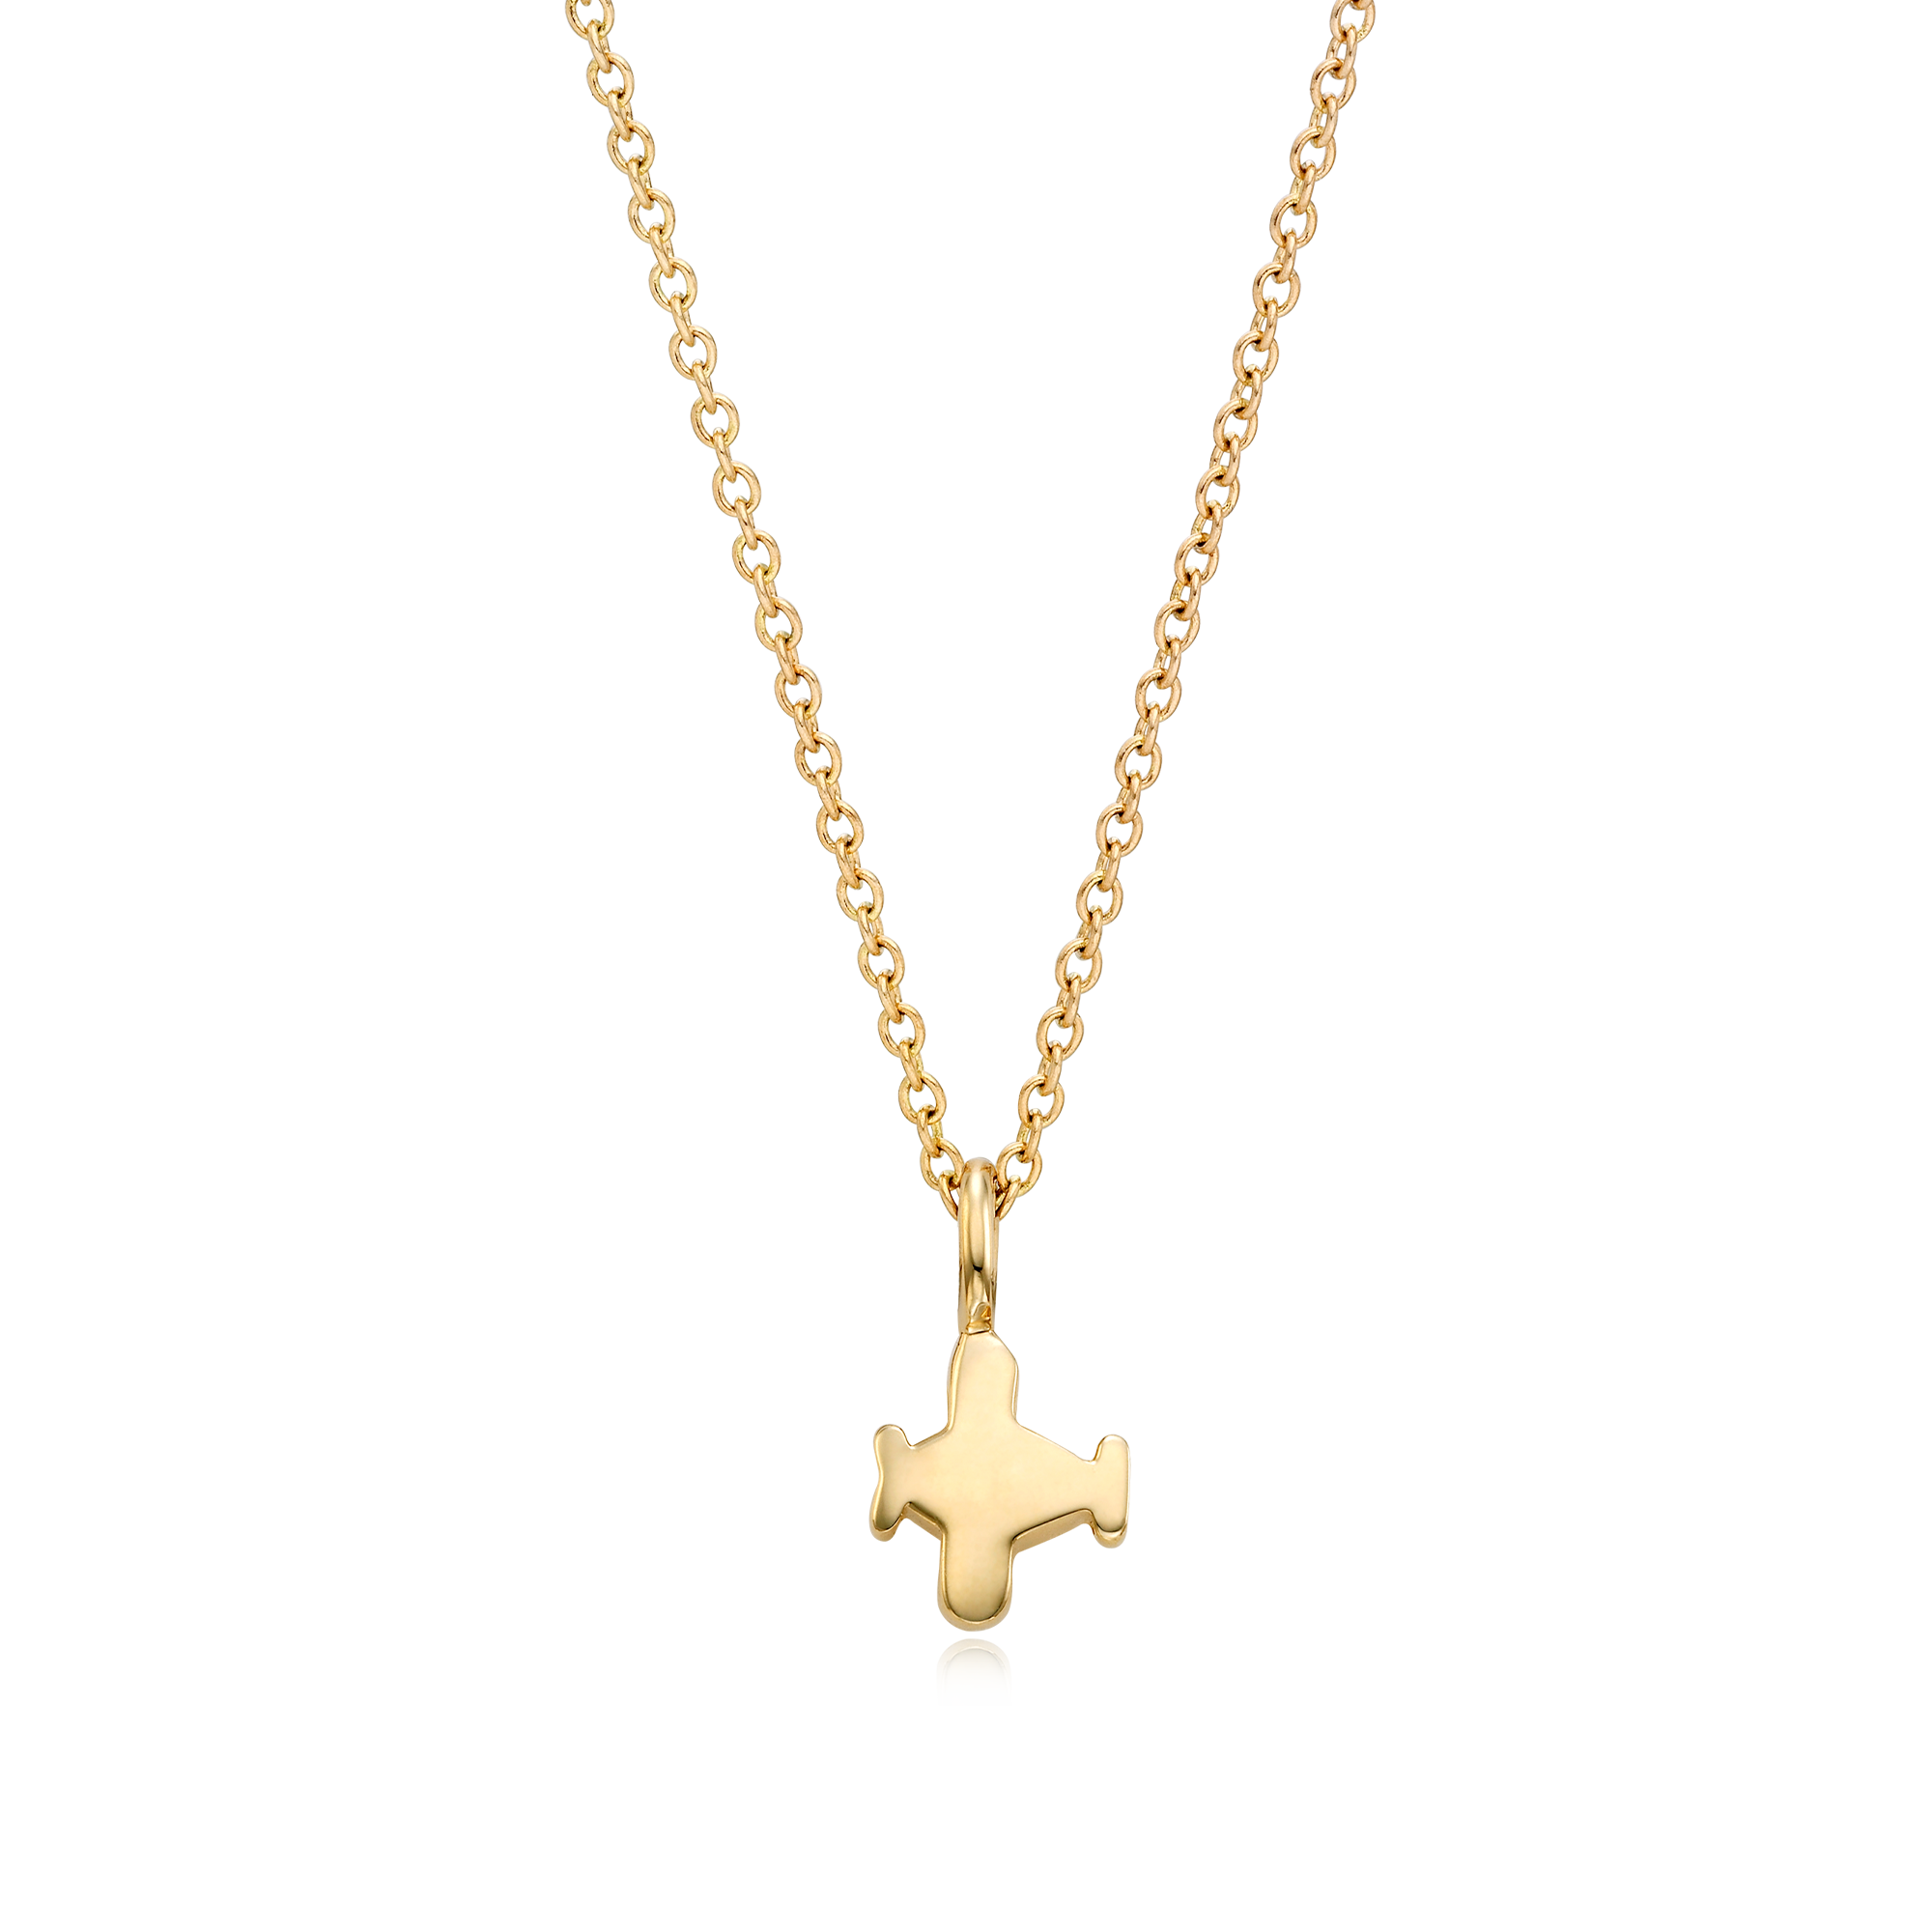 14K/18k Gold Kaiu Hope Necklace - Airplane Necklace